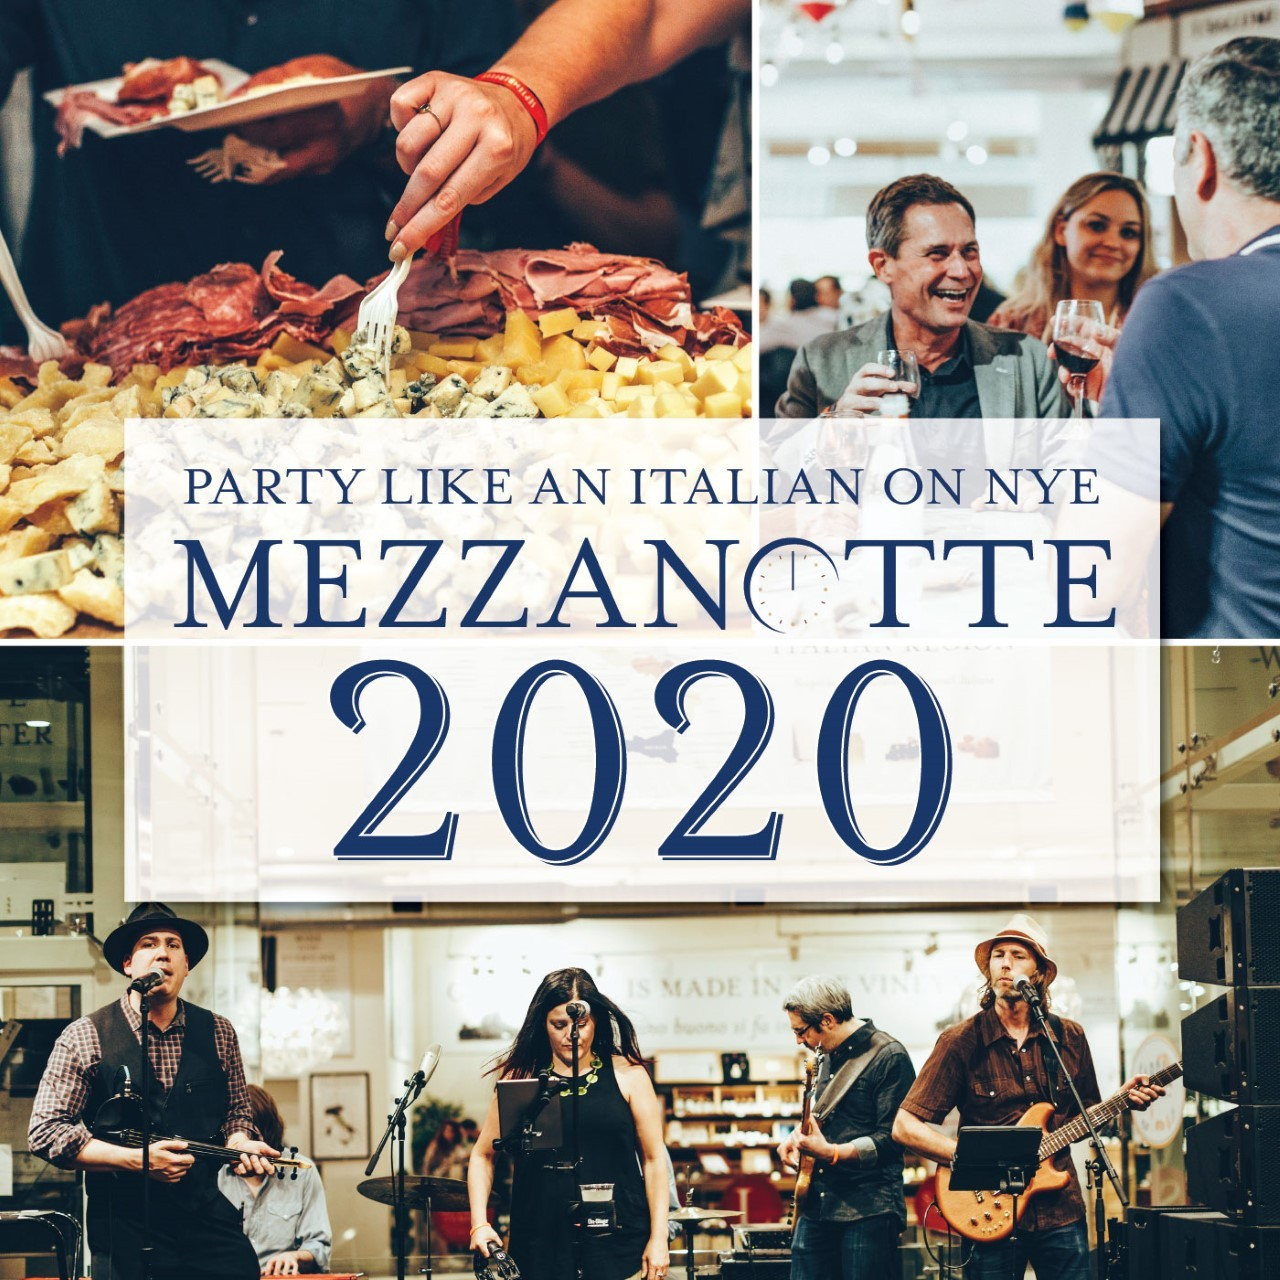 New Year's Eve at Eataly Chicago: Mezzanotte